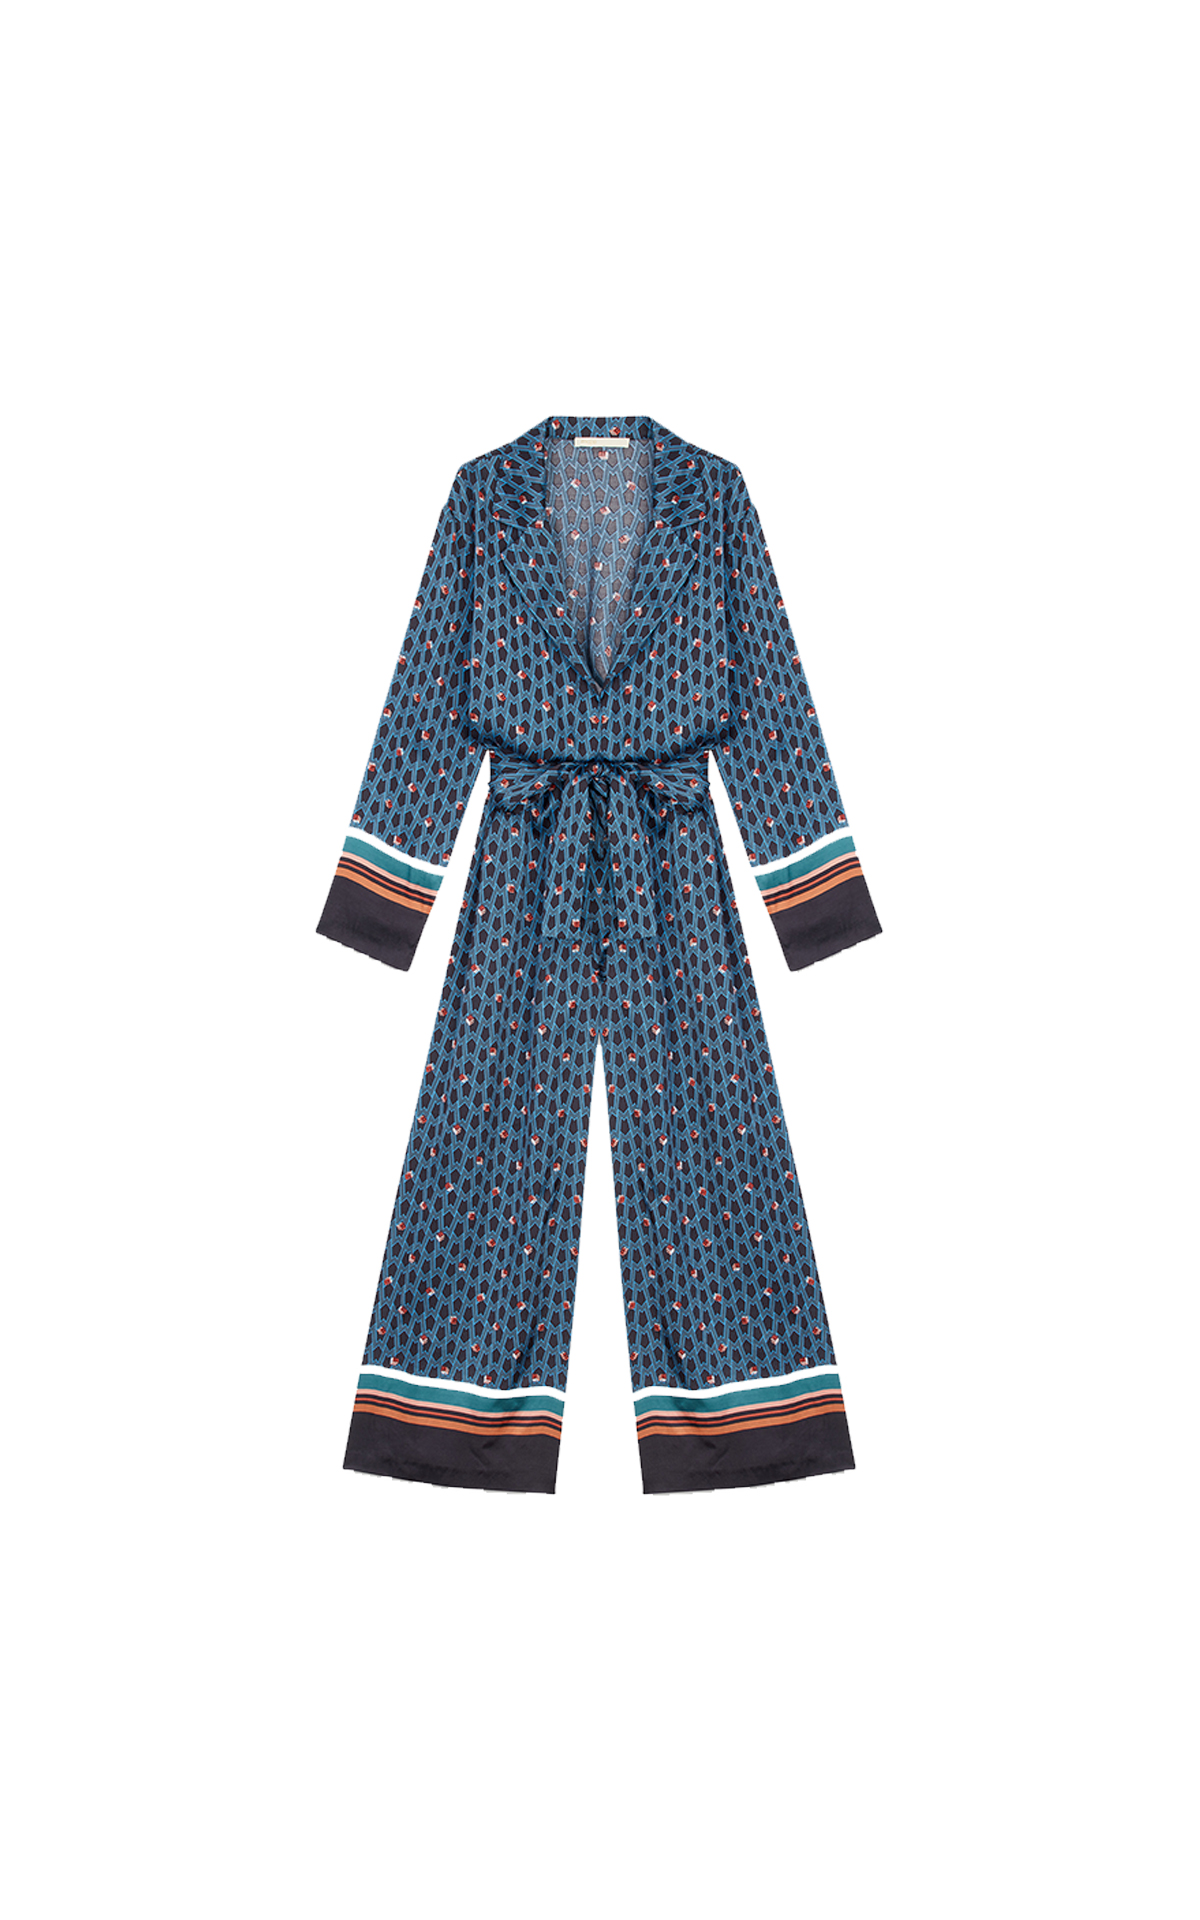 Maje Monogram printed trouser suit at The Bicester Village Shopping Collection